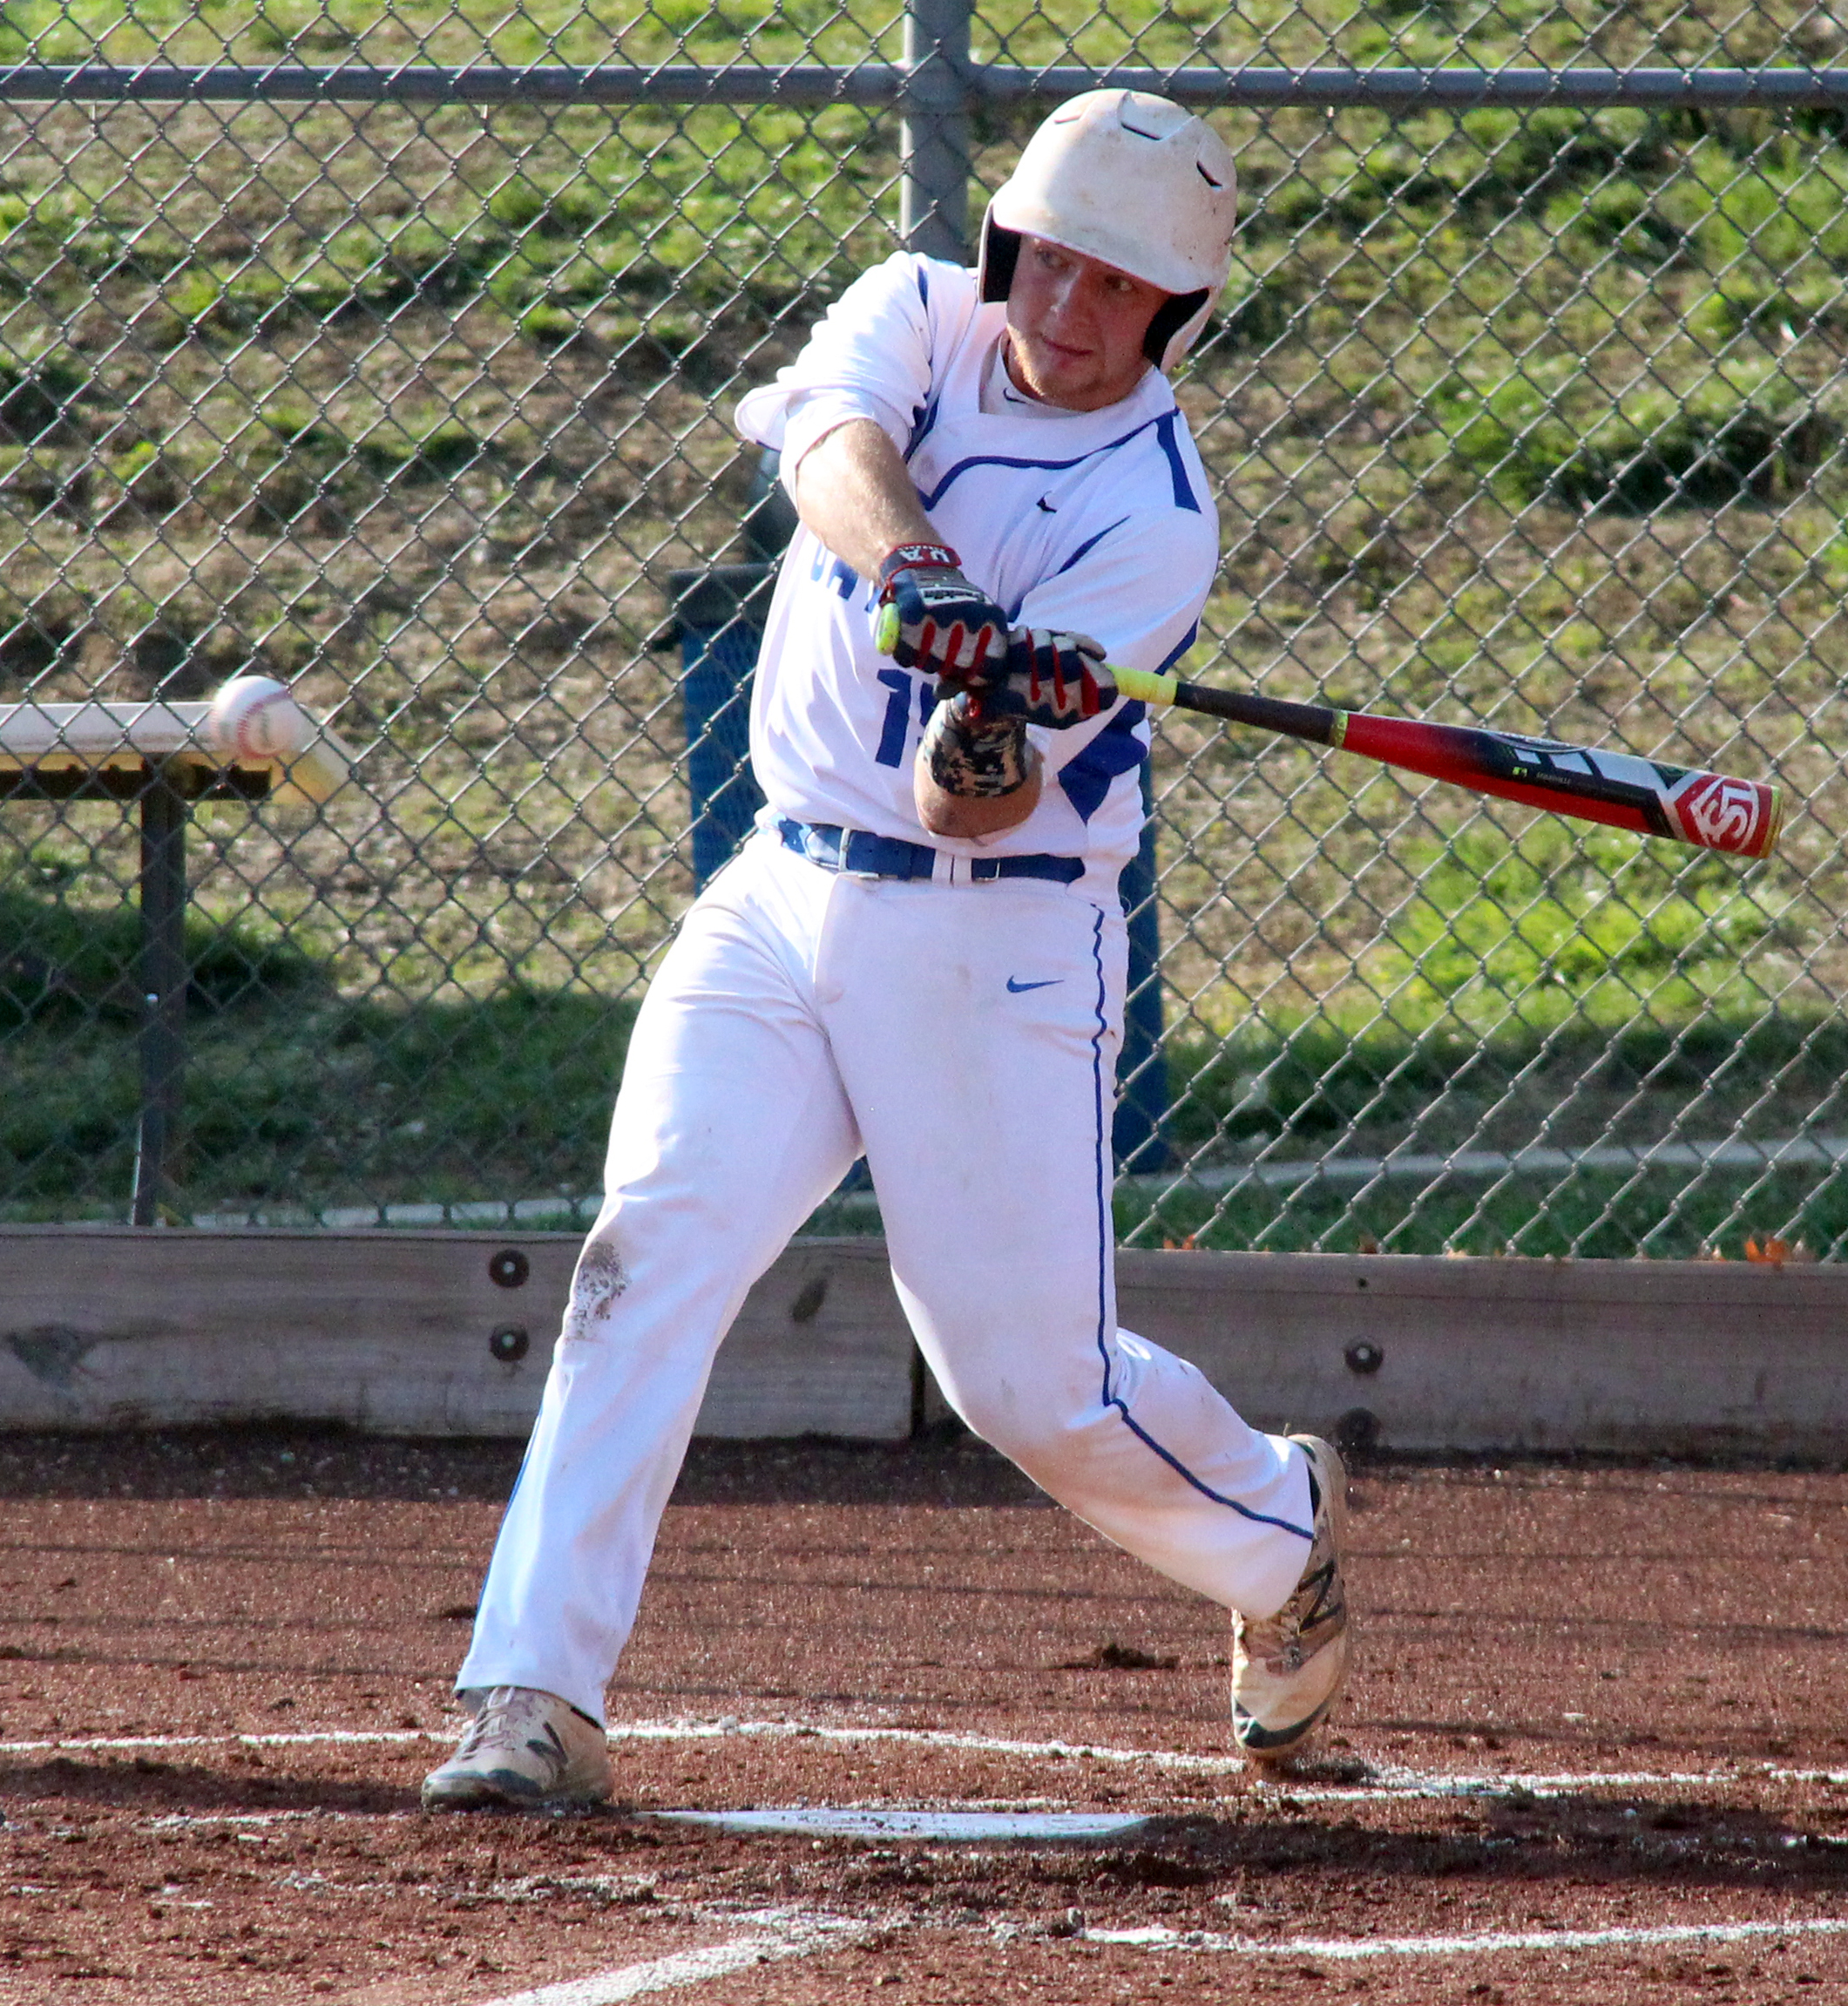 ROSS MARTIN/Citizen photo West Platte senior catcher Peyton Morris takes a swing during a Class 2 quarterfinal against Lincoln on Wednesday, May 25 at Benner Park in Weston, Mo.